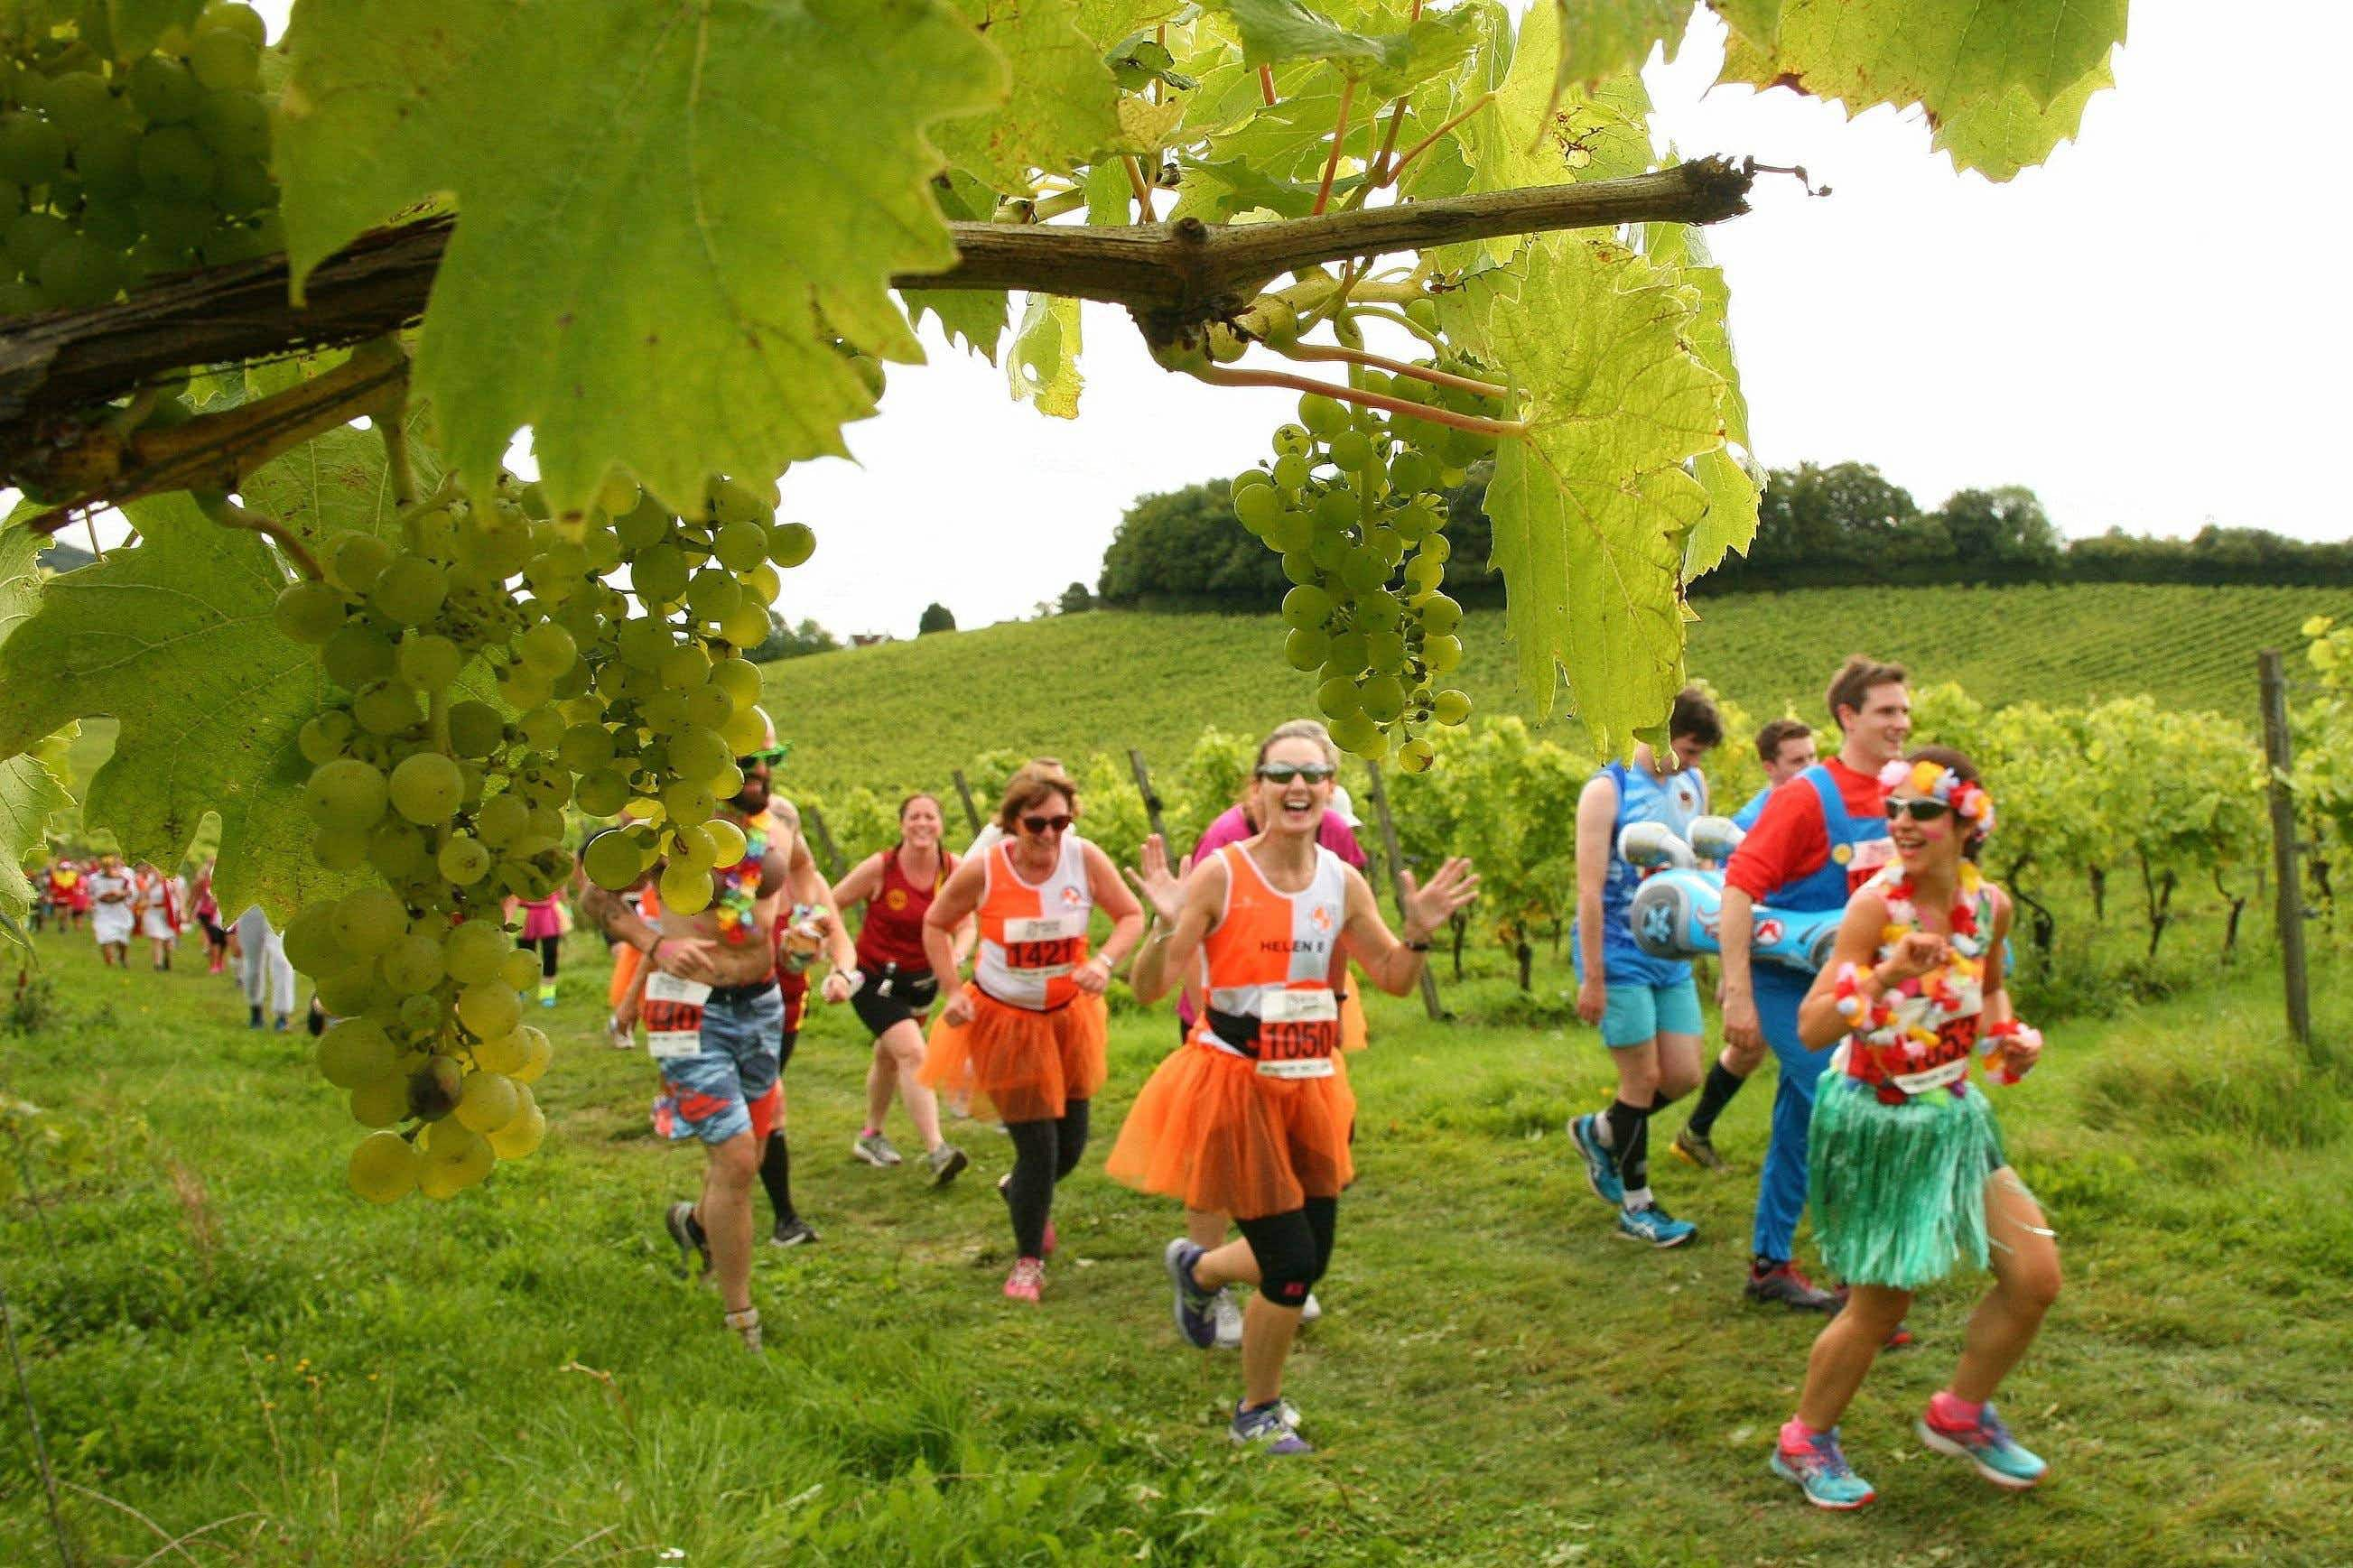 Pace yourself in the world's booziest races